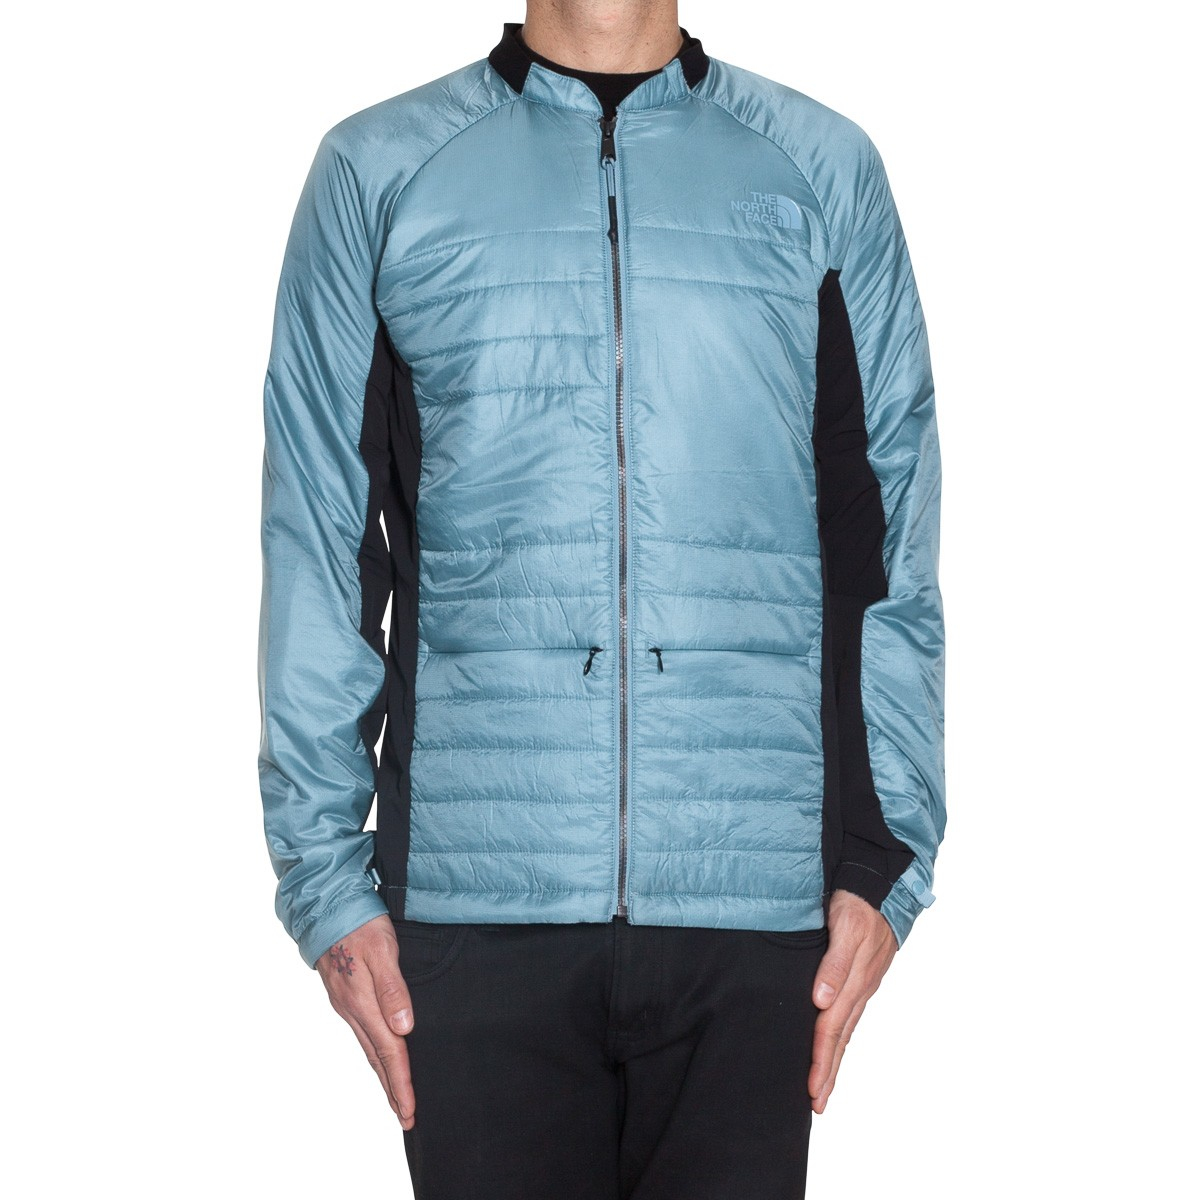 966e334b4157 ... new zealand lyst the north face m denali insulated jacket red in blue  for men 09059